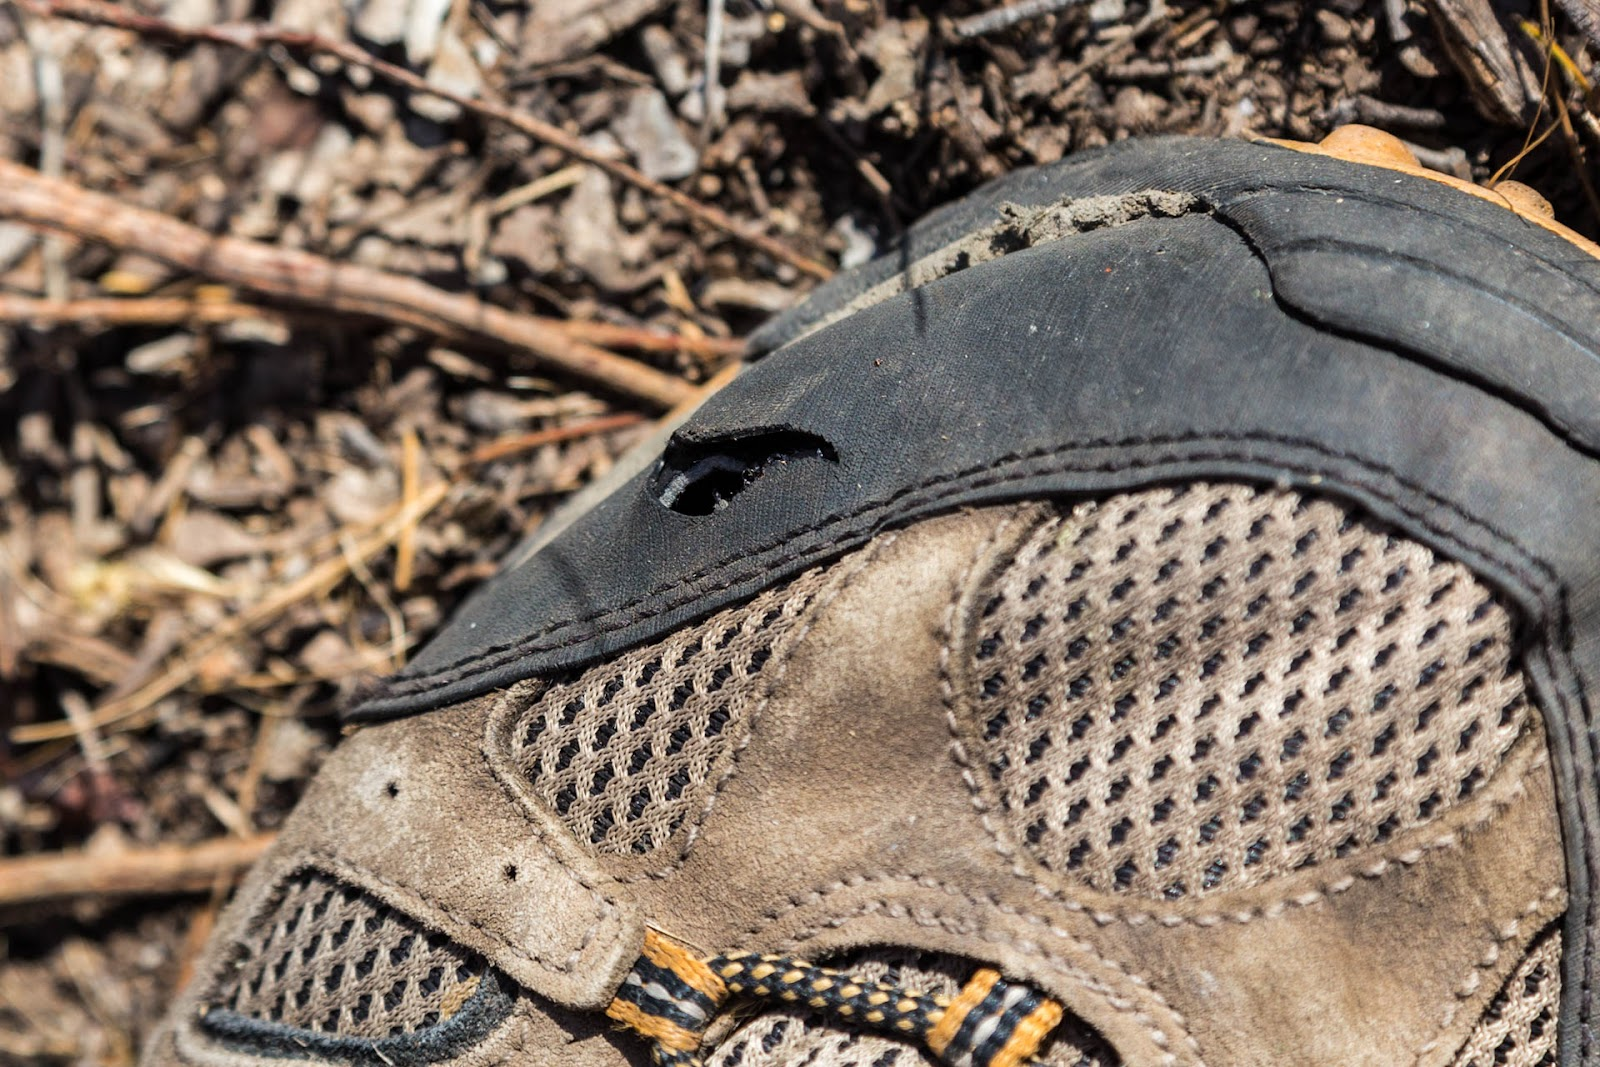 hole in merrell moab ventilator boot